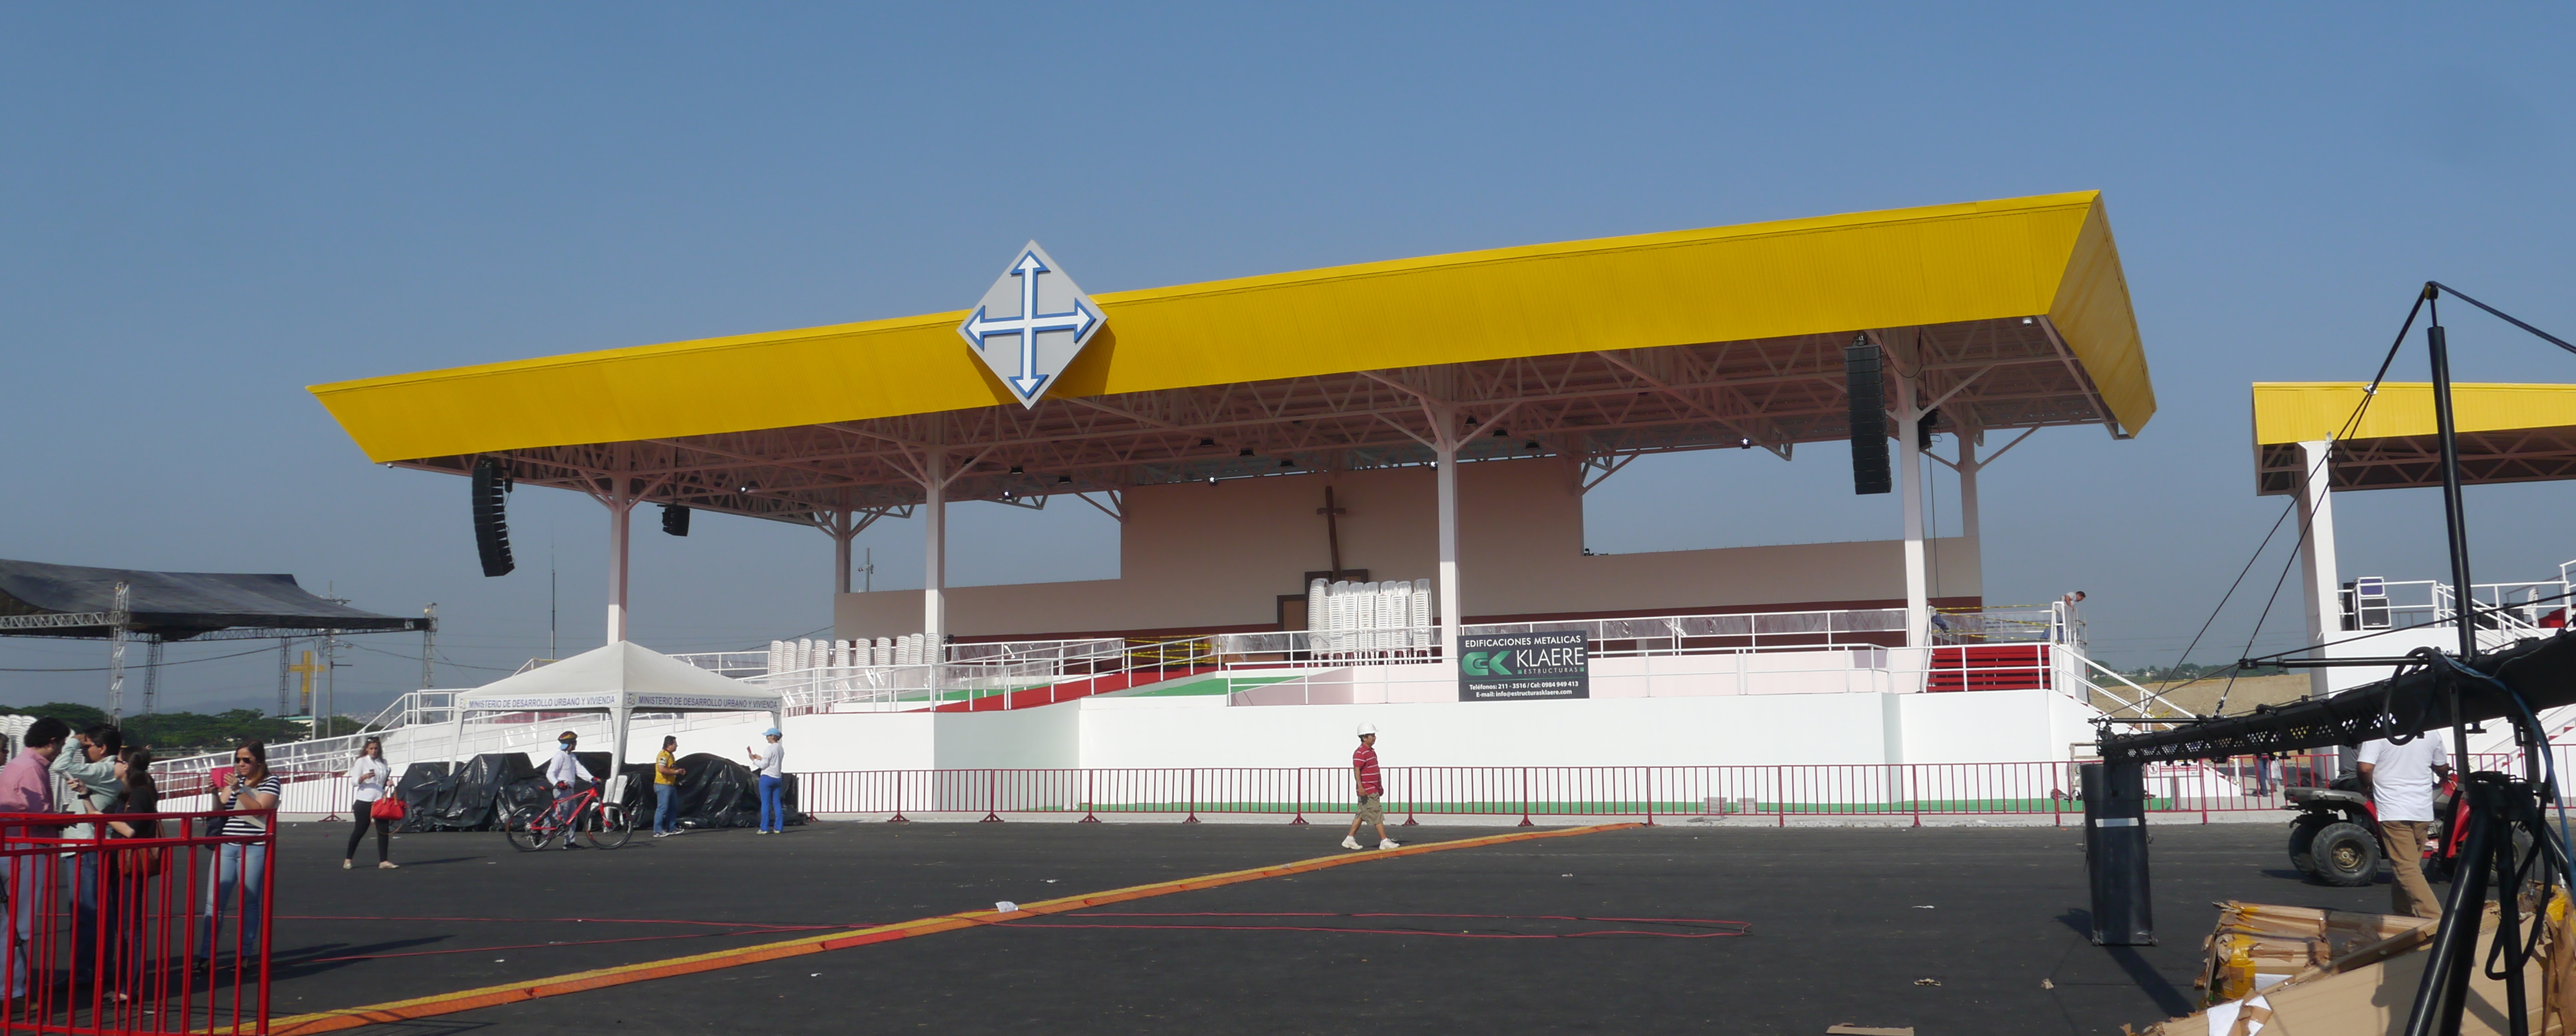 File Templete Papal Guayaquil 2015 Jpg Wikimedia Commons